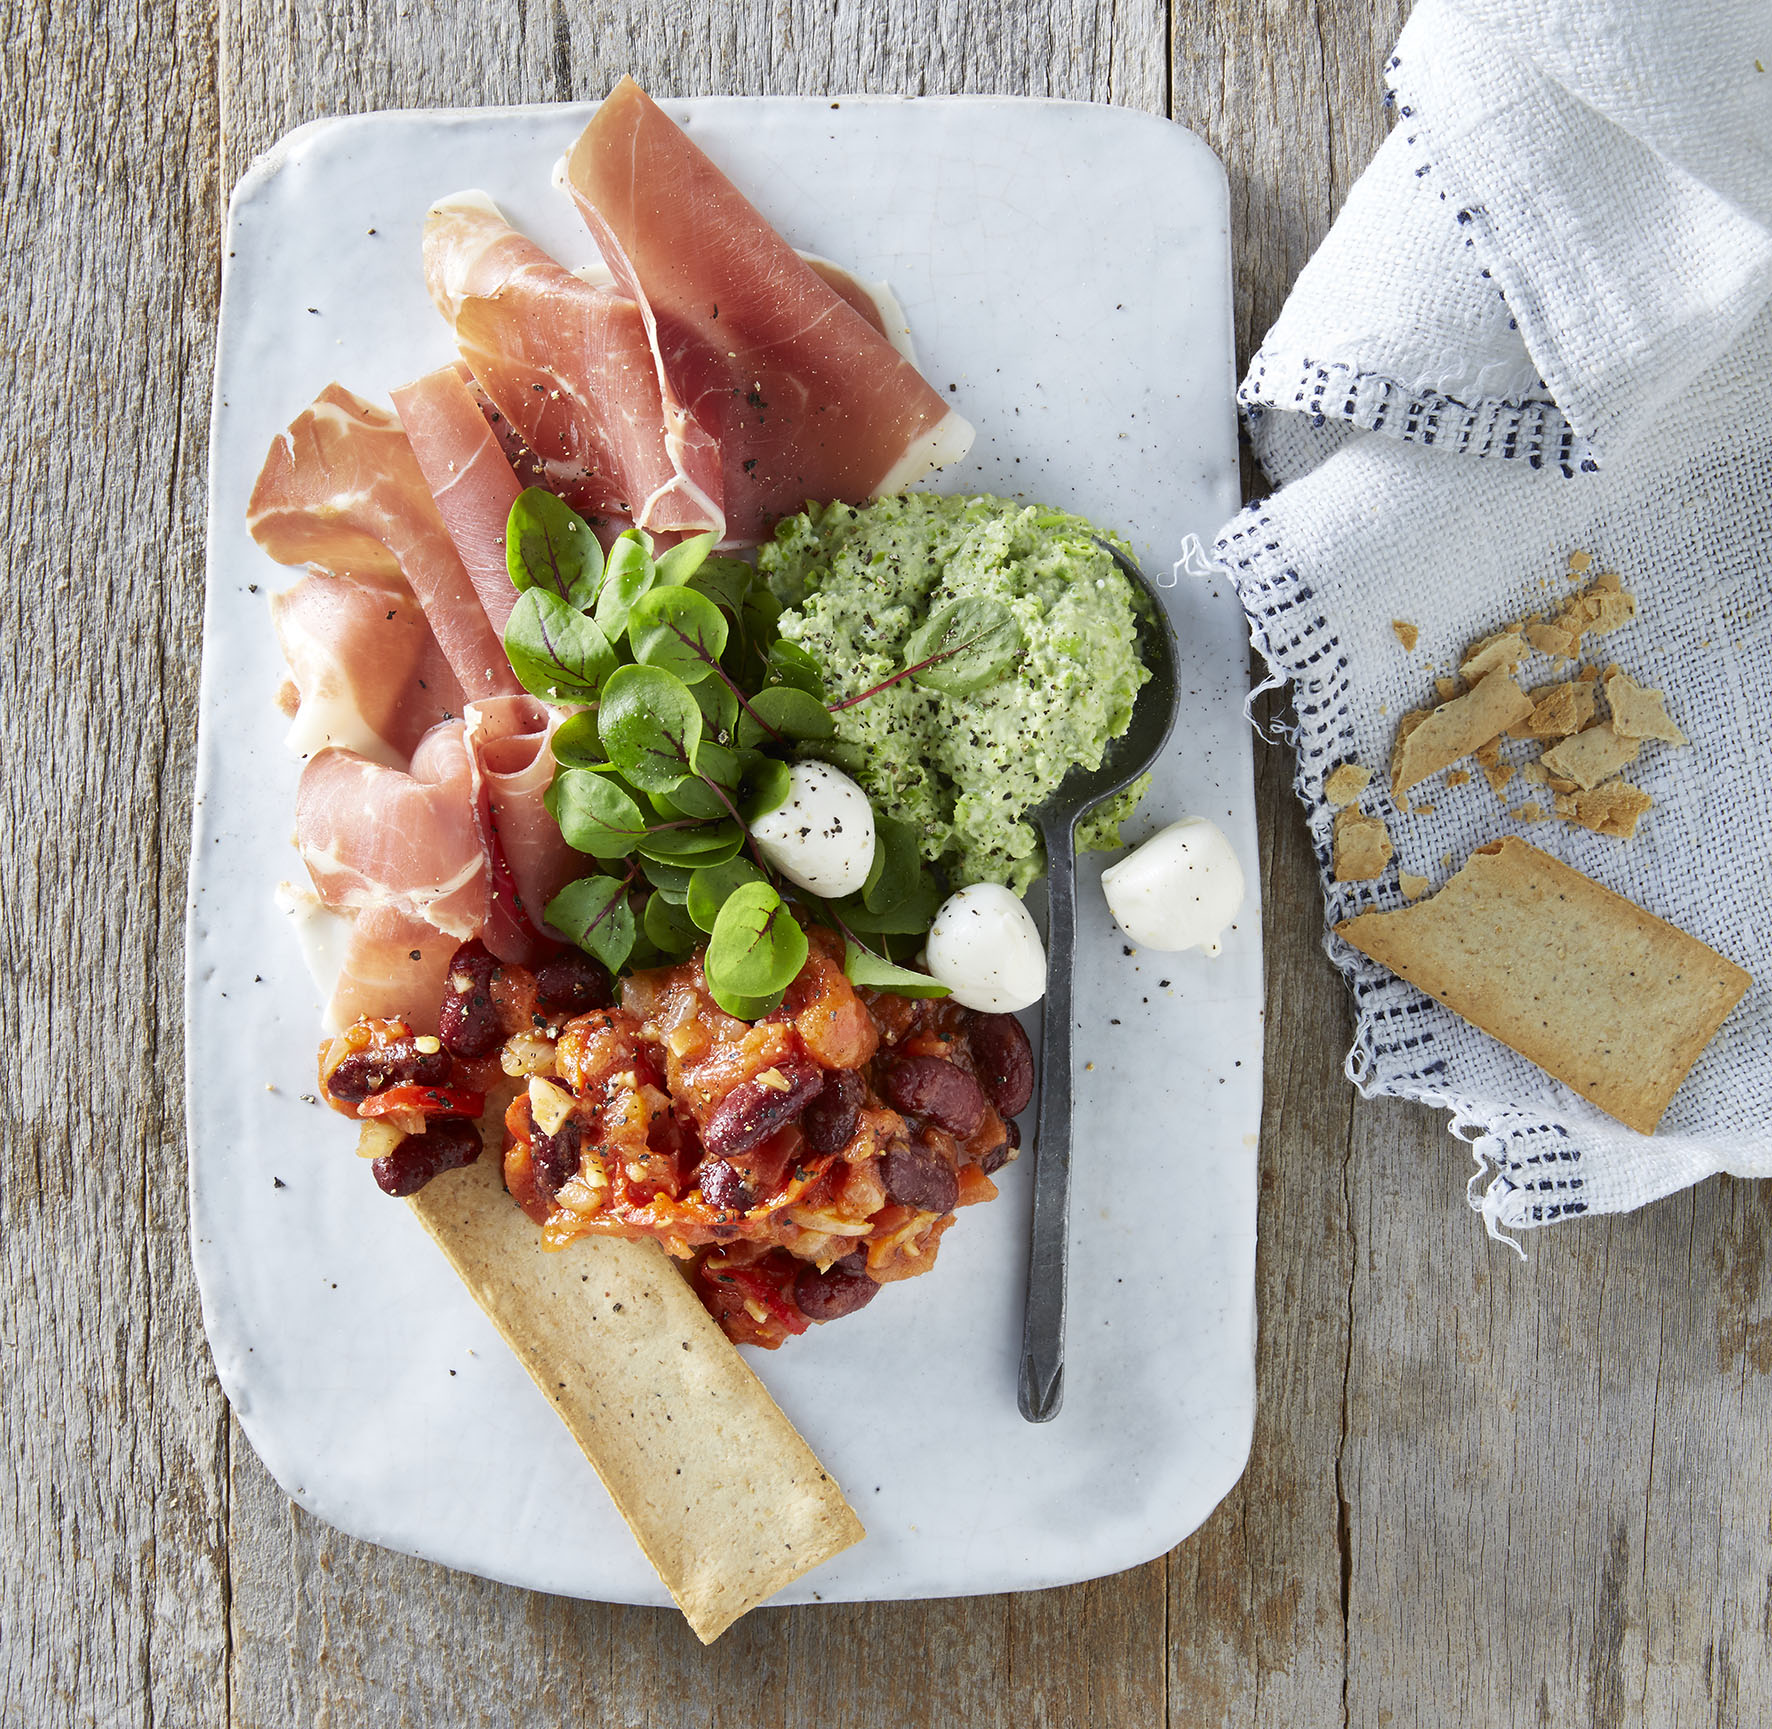 Spicy Tomato Dip with Broadbean, Pea and Feta Dip served with Proscuitto